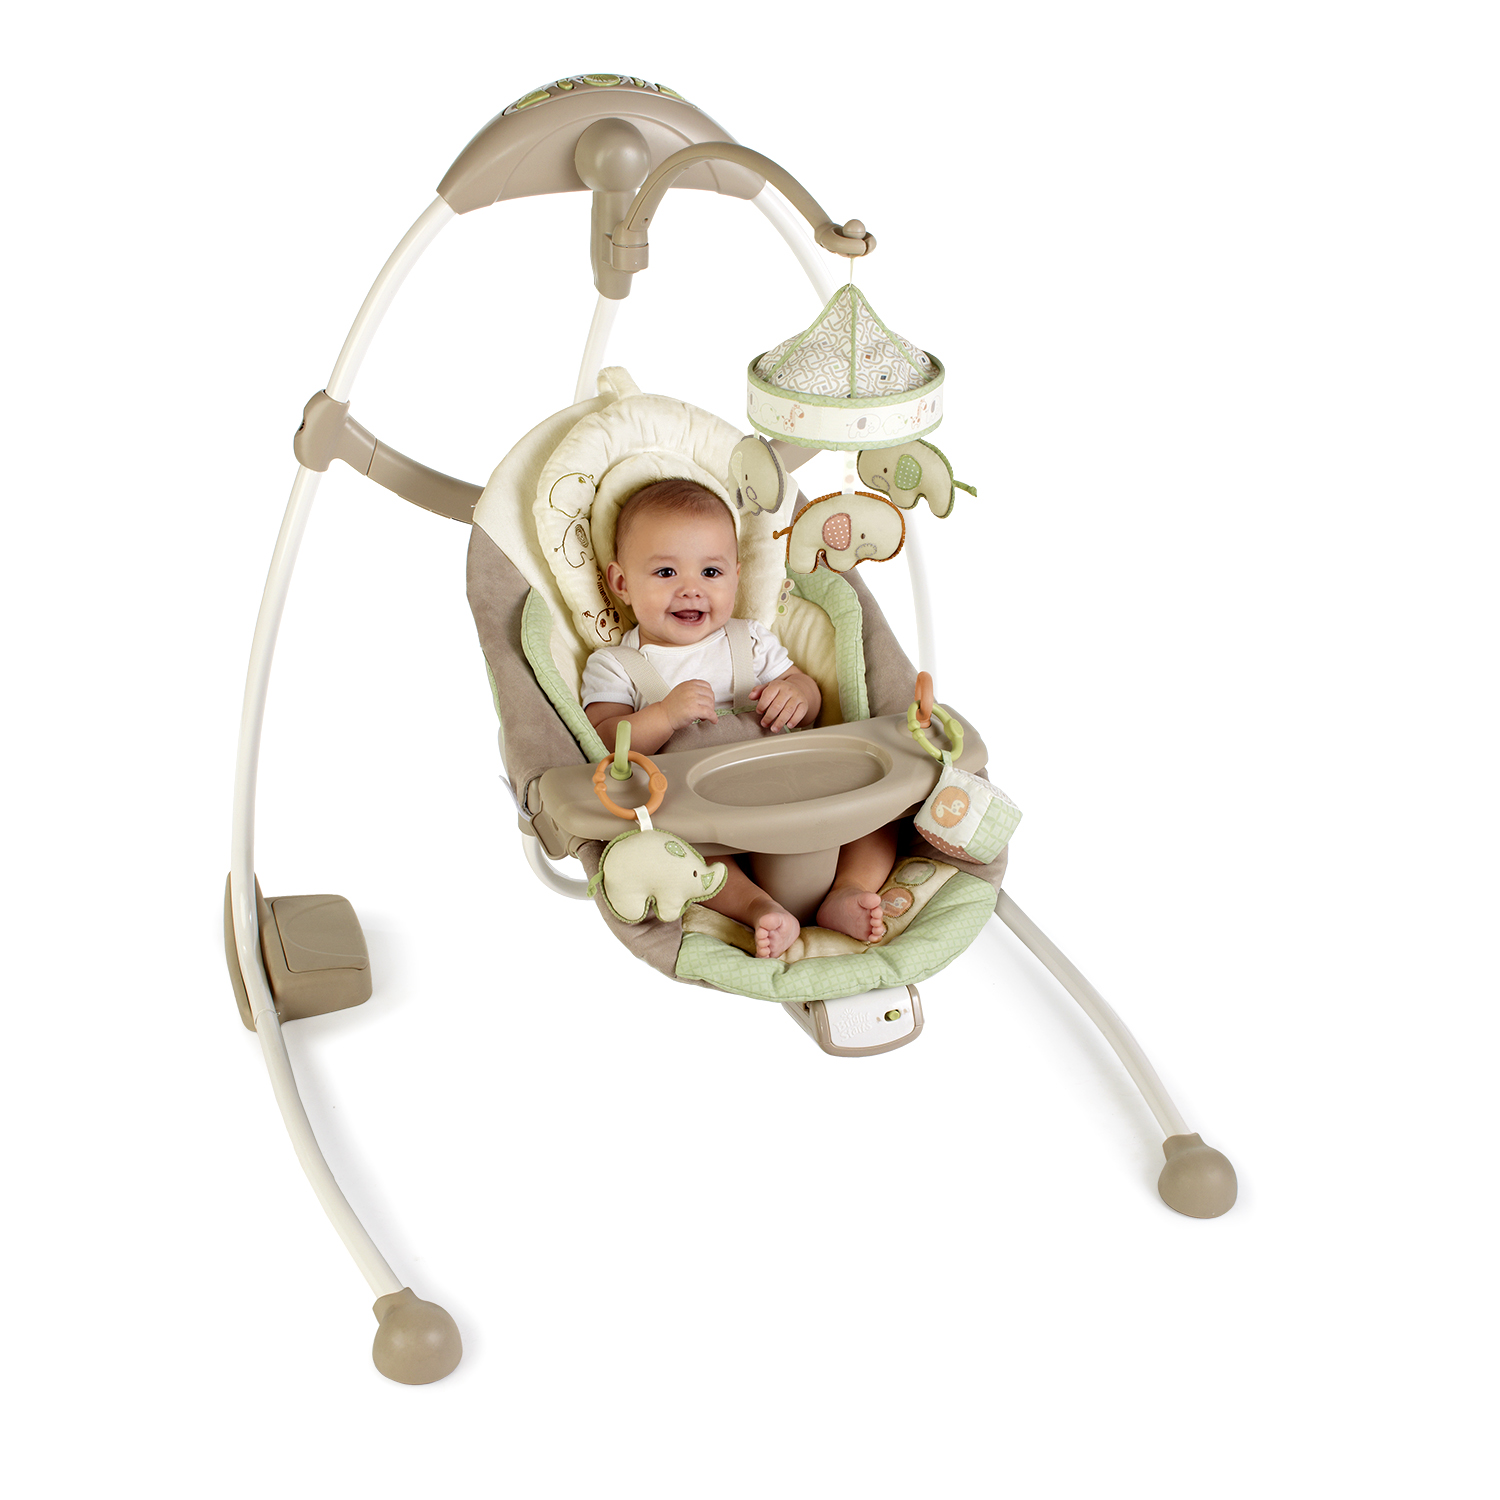 Bright Starts Ingenuity Cradle and Sway Swing - Bella Vista |